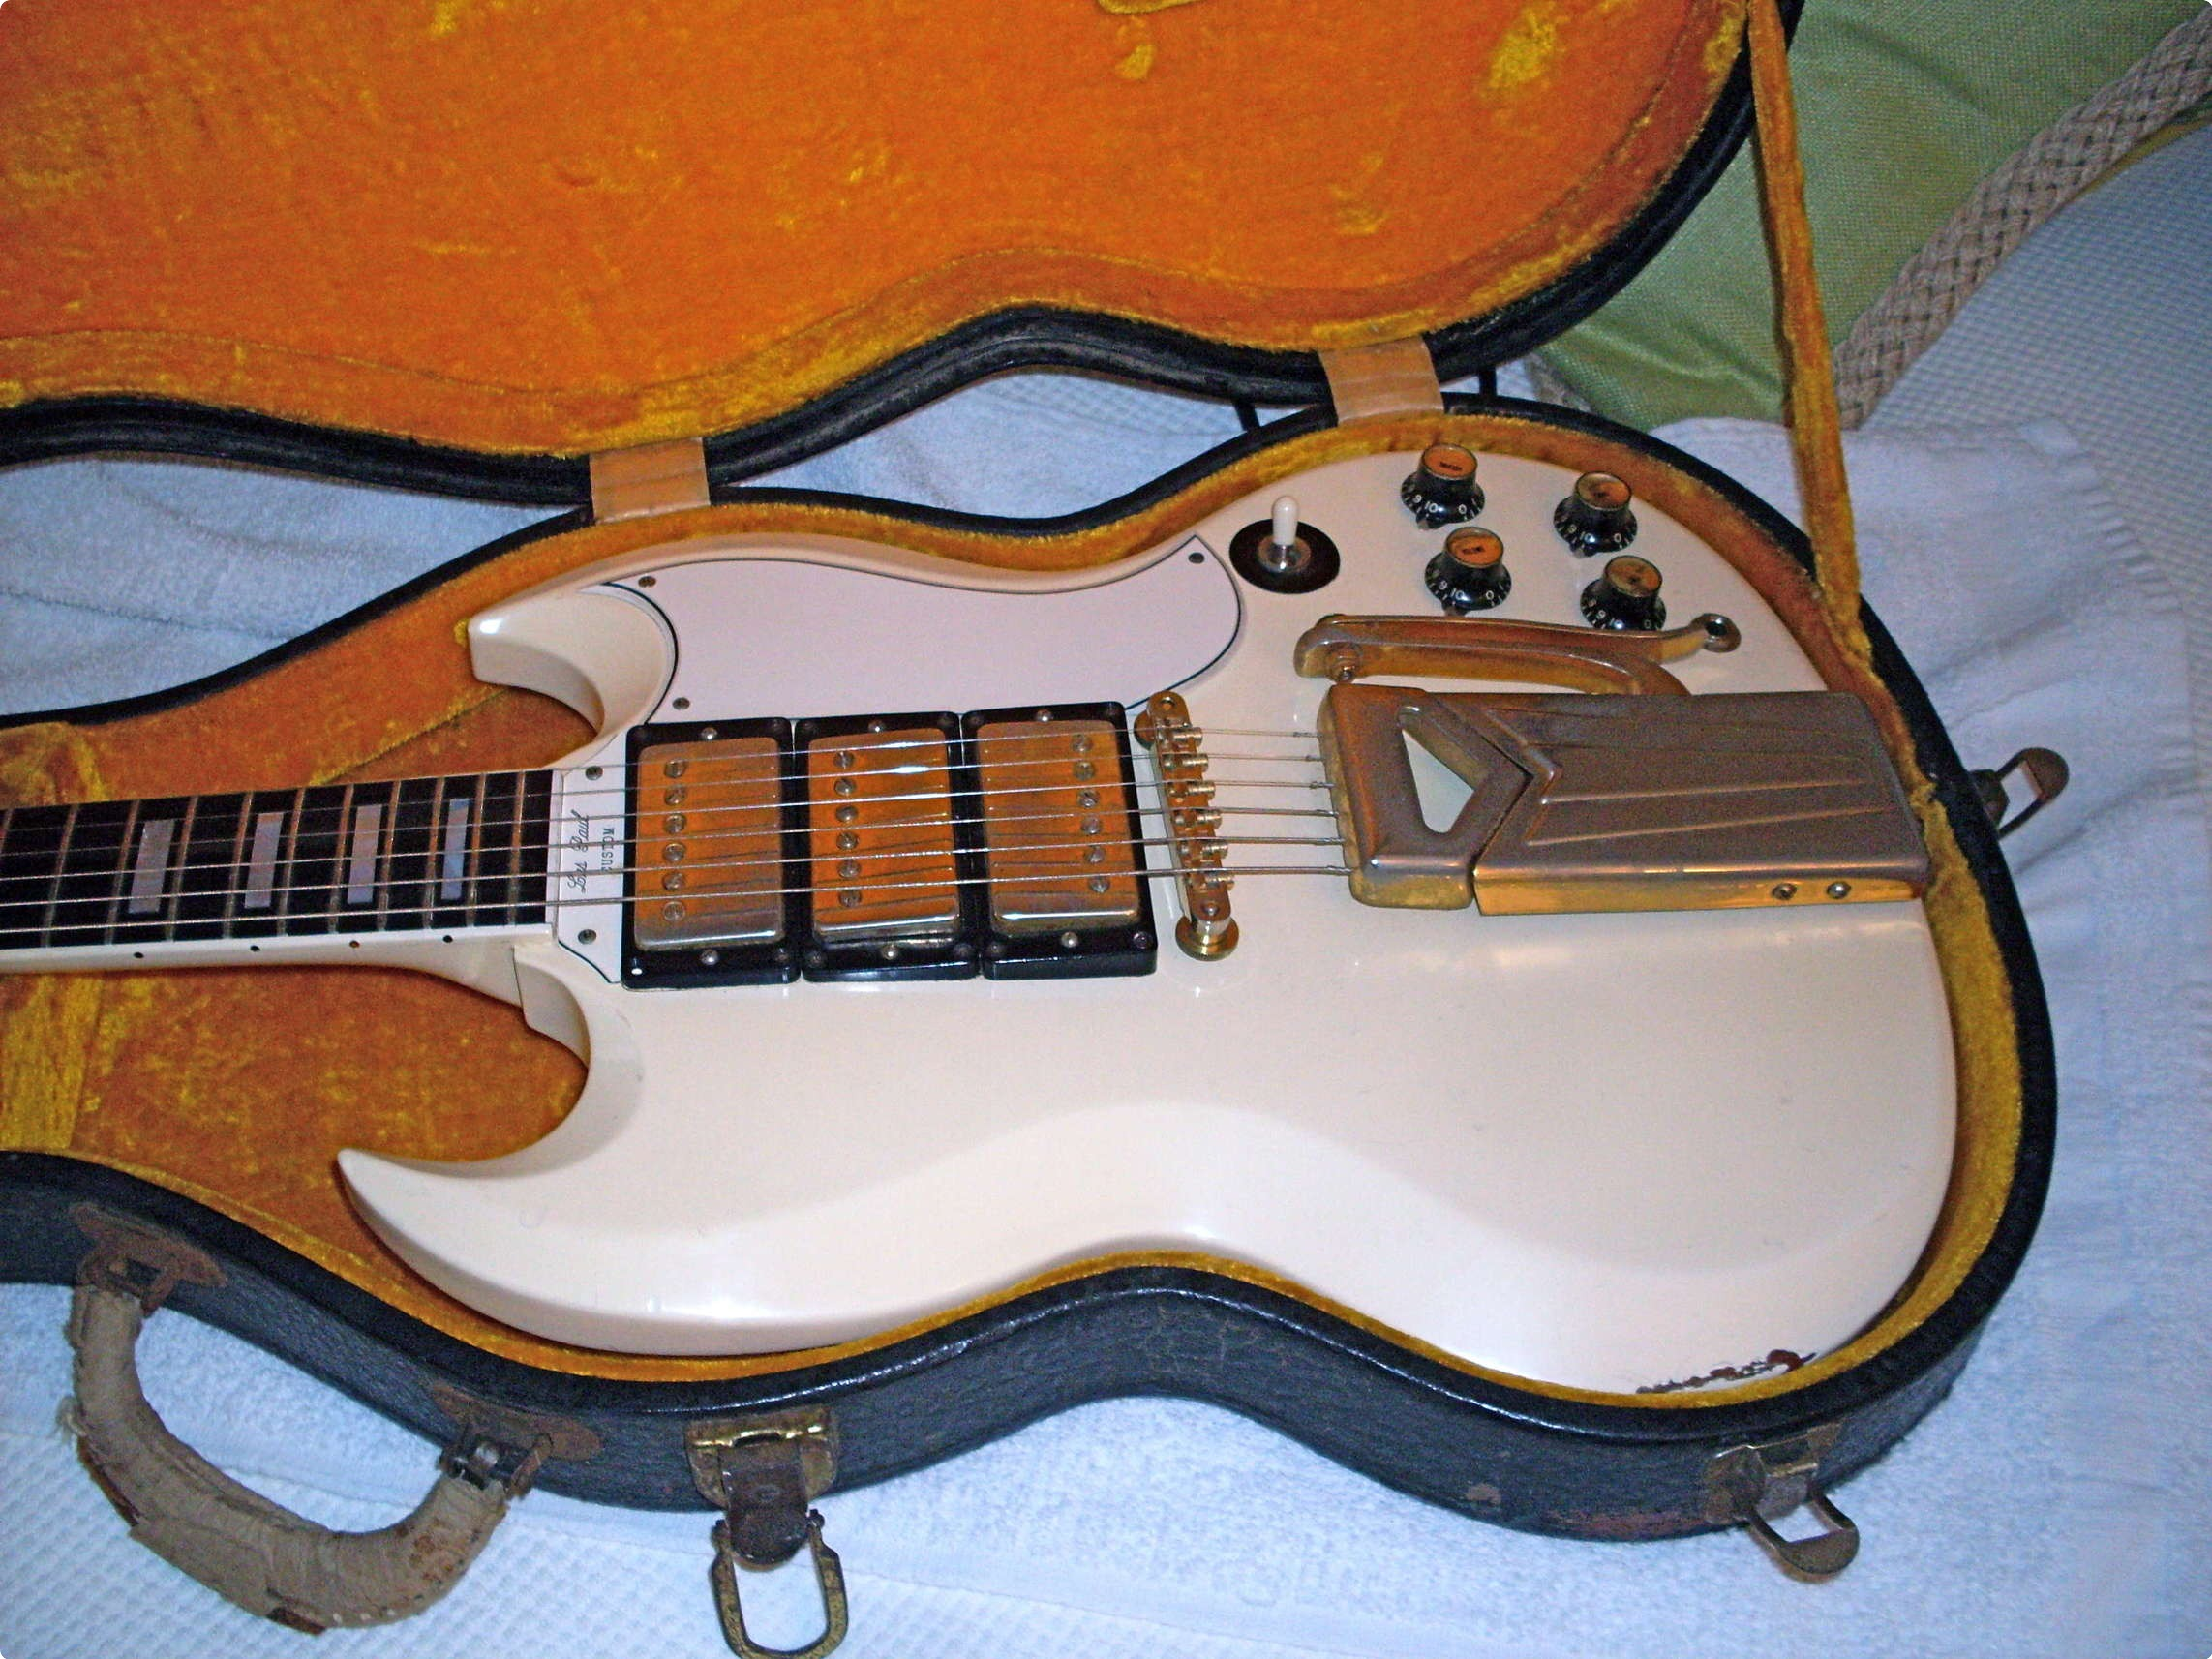 Gibson Wiring Harness For Sale Diagram Sg Les Paul Custom 1962 White Guitar Ok Guitars Columbia